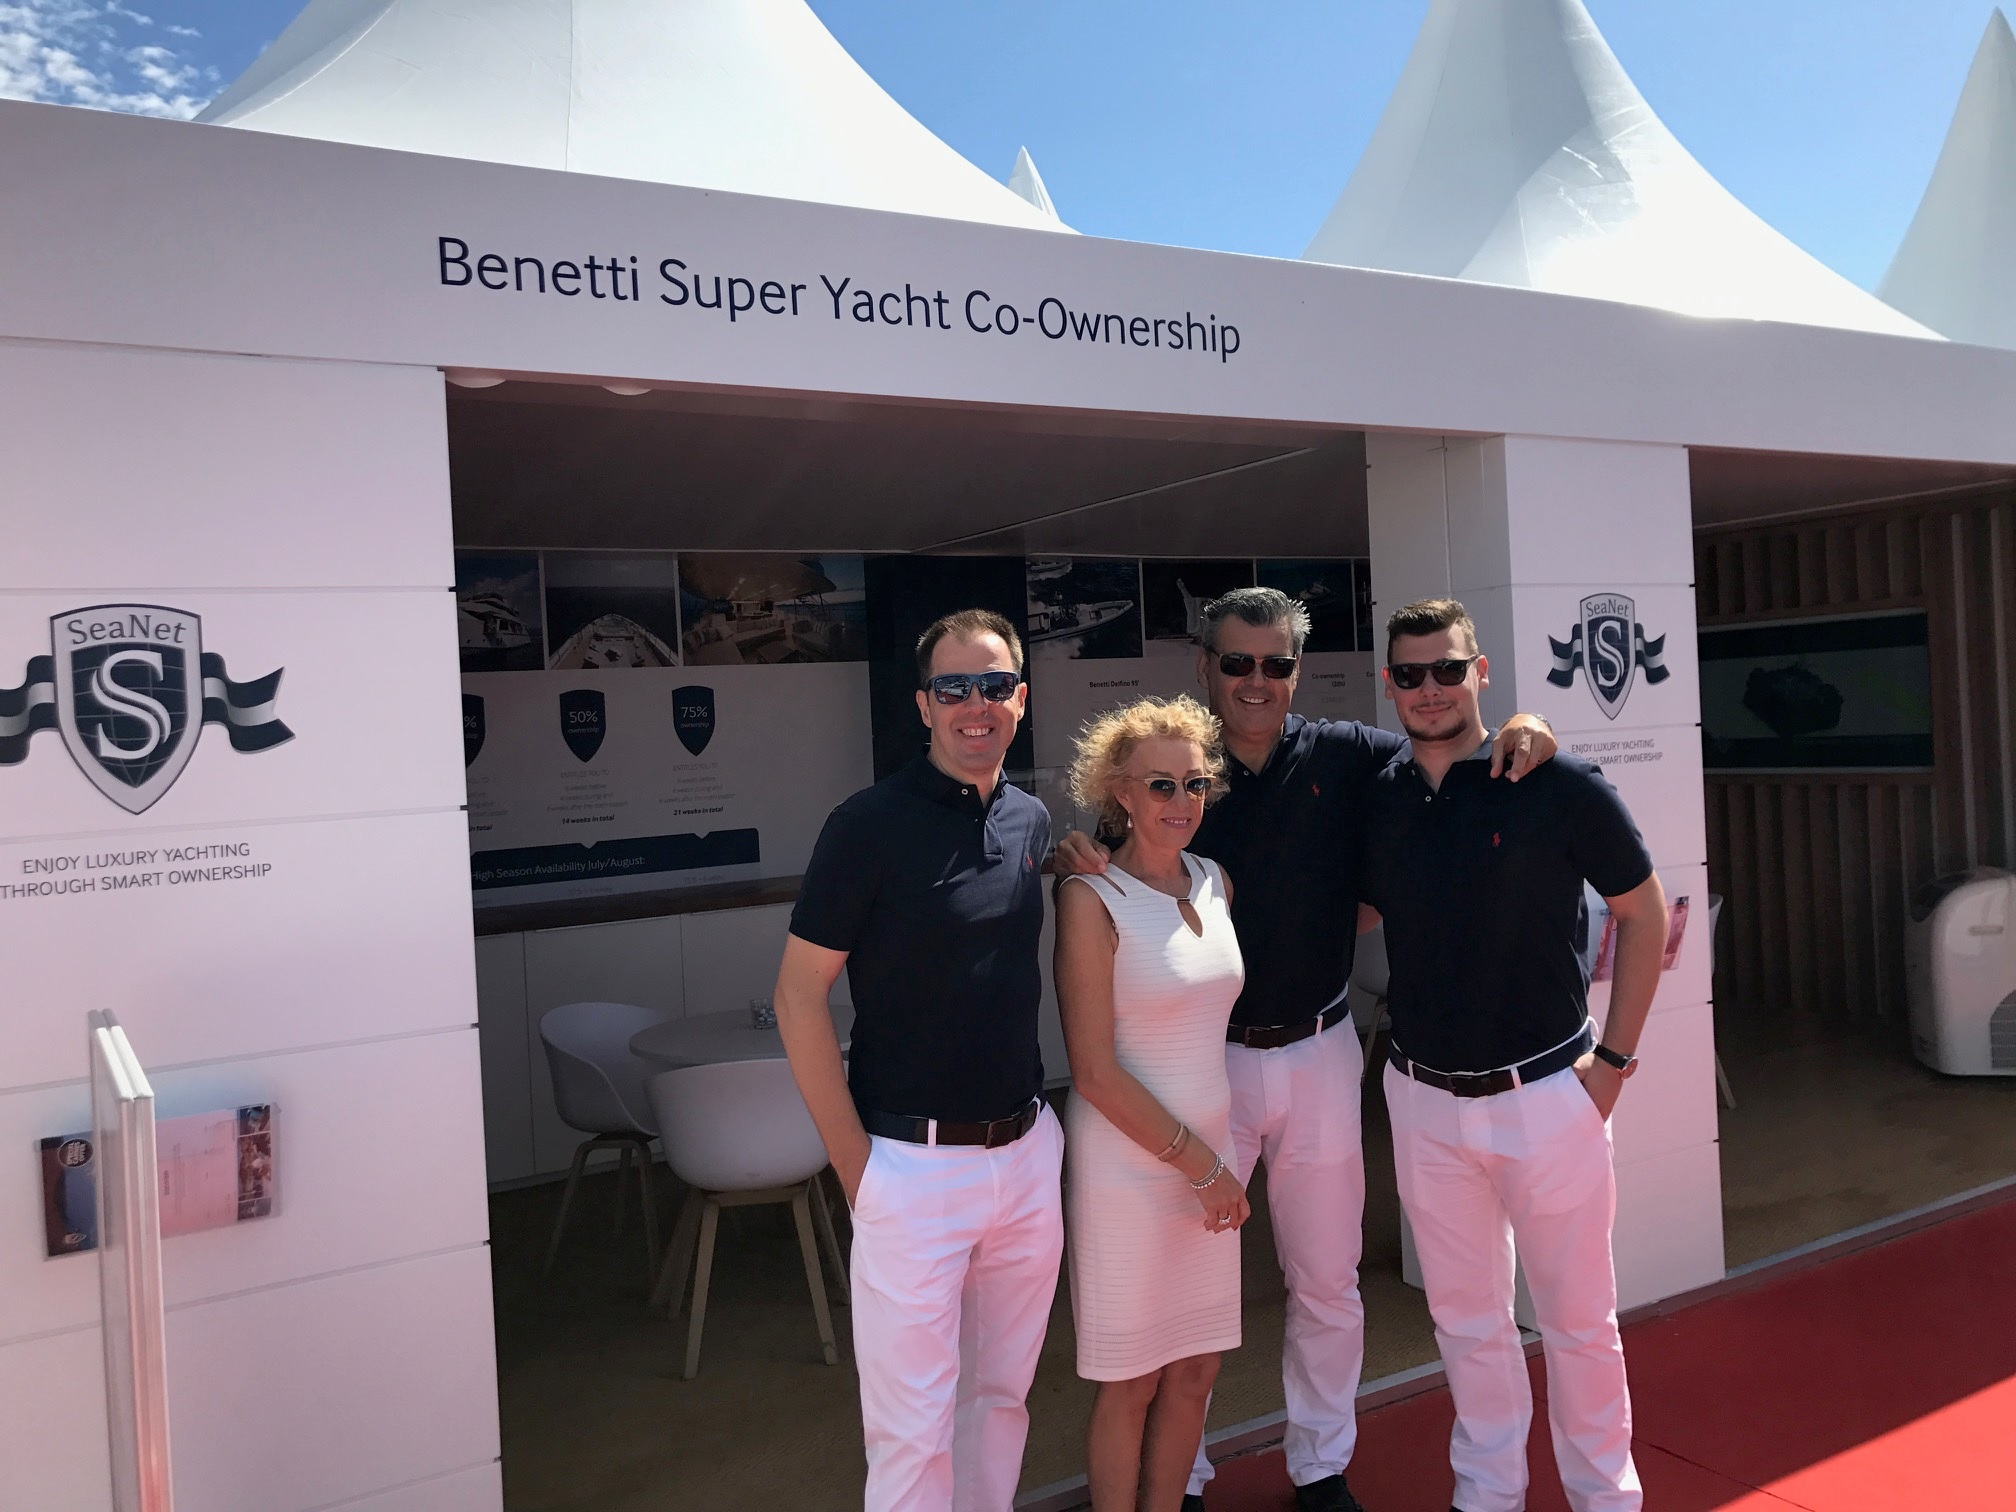 SeaNet at Cannes Yachting Festival